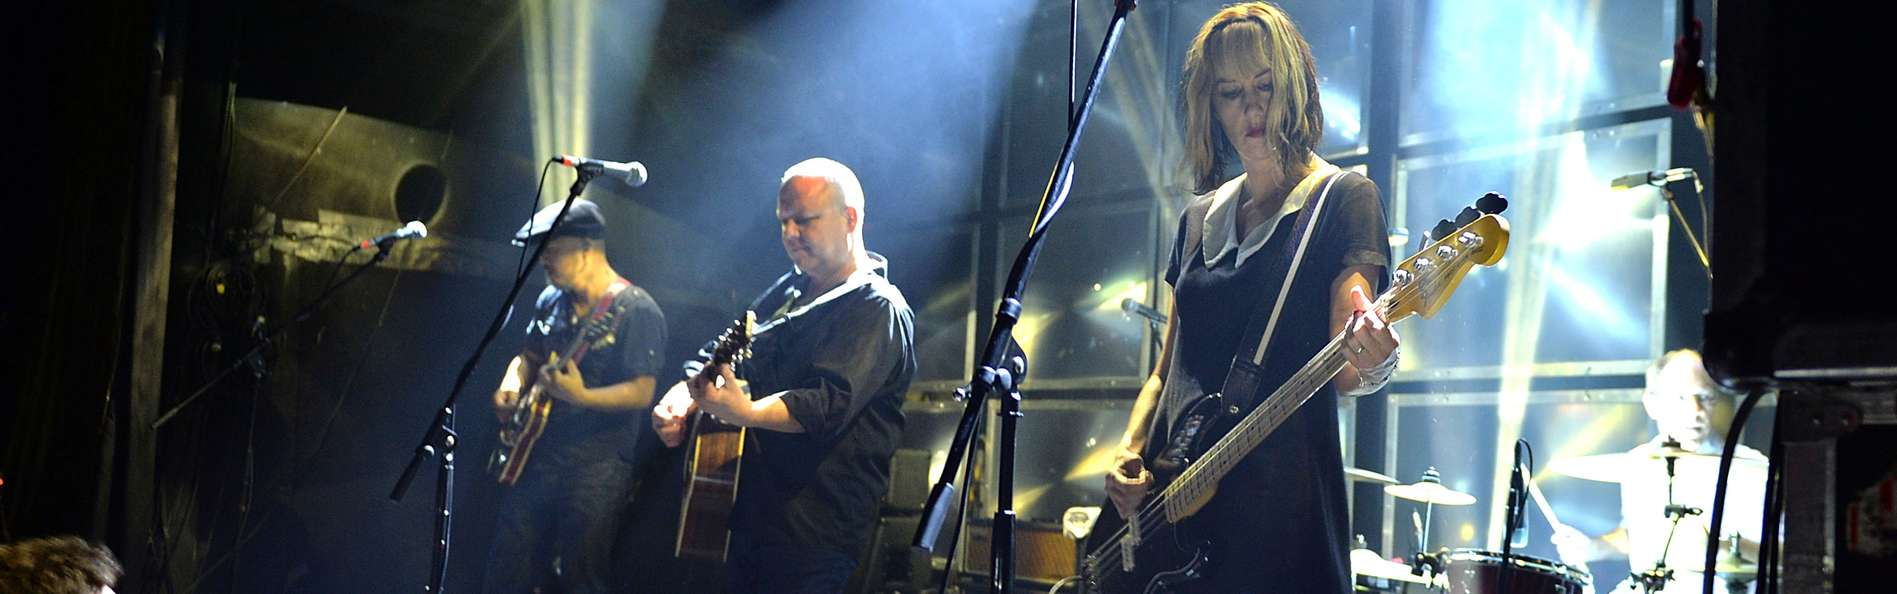 Pixies Foto: Getty Images